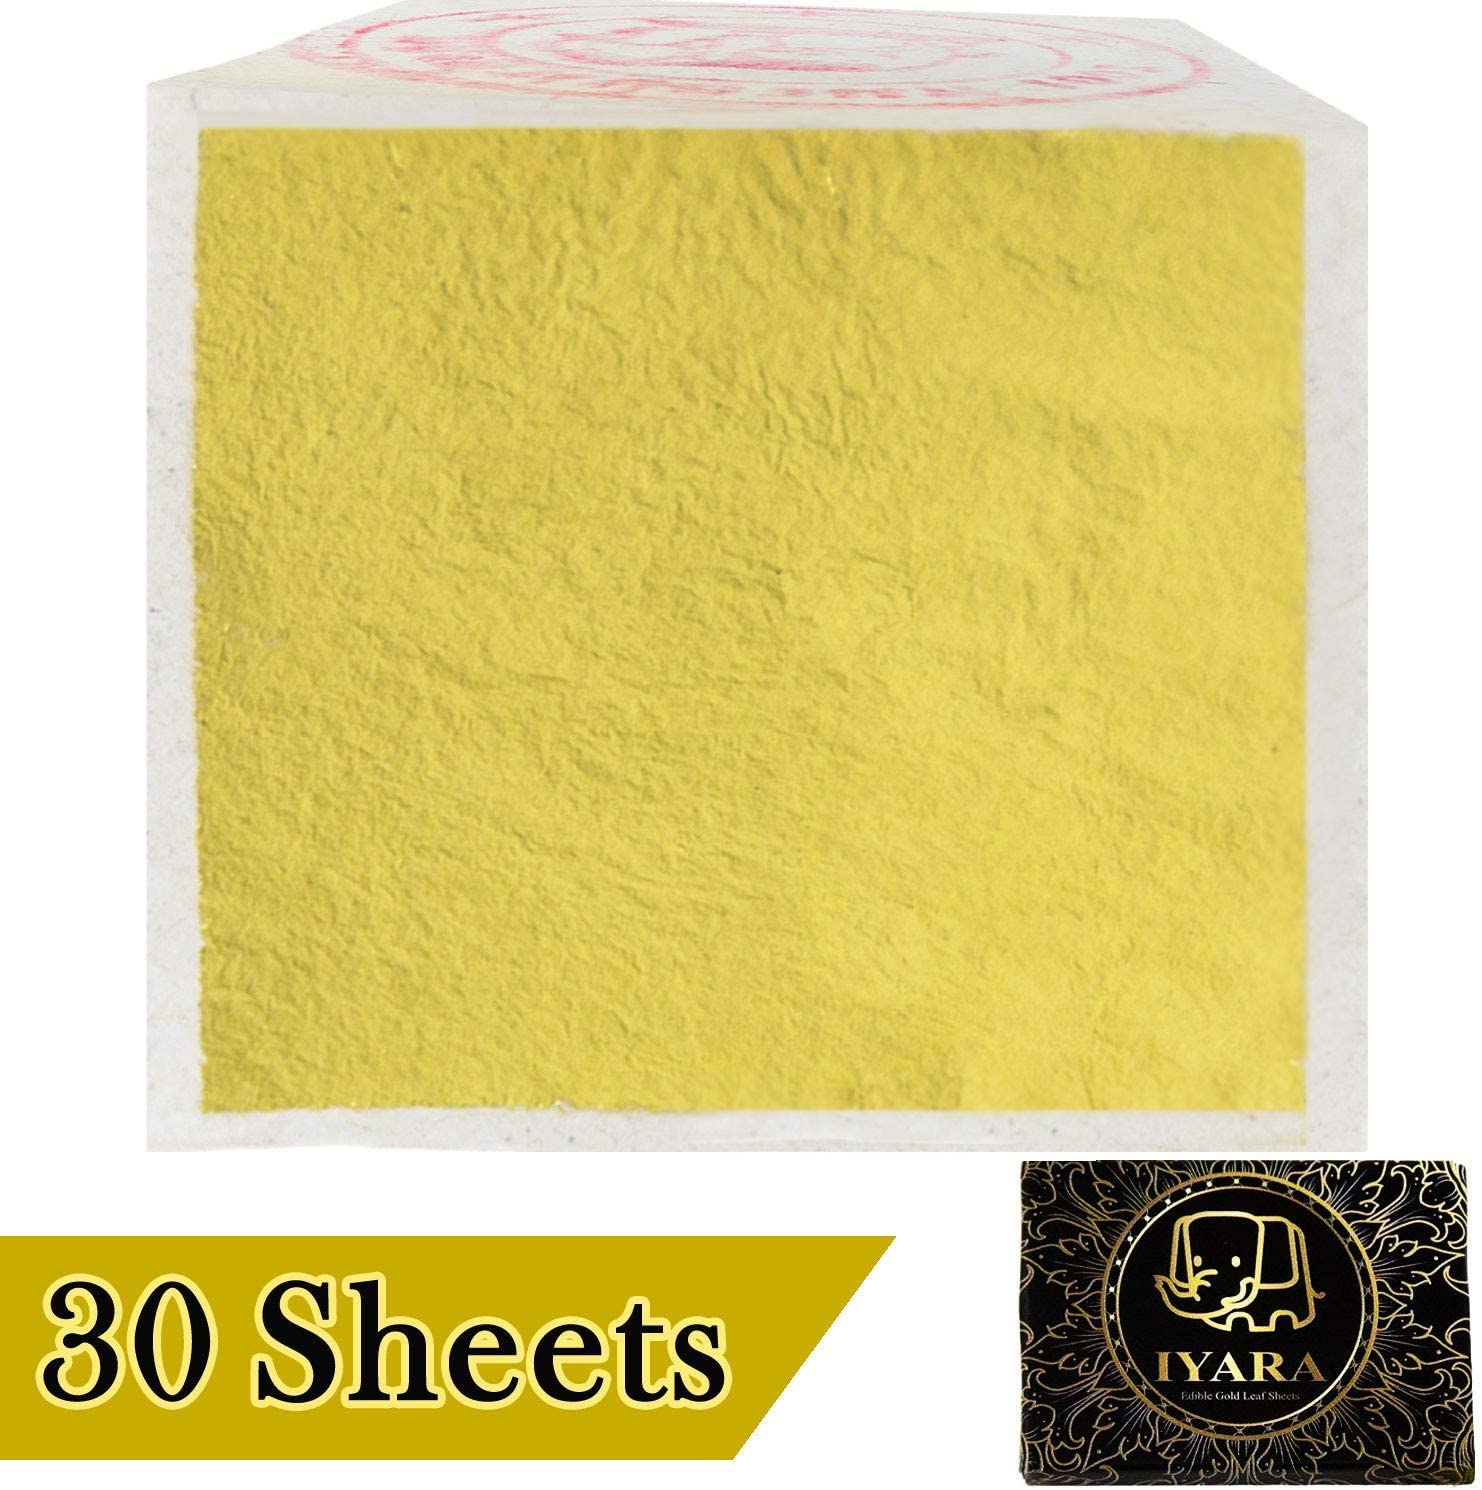 """IYARA 30 Edible Leaf Sheets – Multipurpose 24 Karat Yellow Gold Leaves for Food and Cake Decoration, Spa Anti-Wrinkle Face Masks, Art, Crafts, Gilding, Restoration, DIY Projects (1.2"""" x 1.2""""),"""